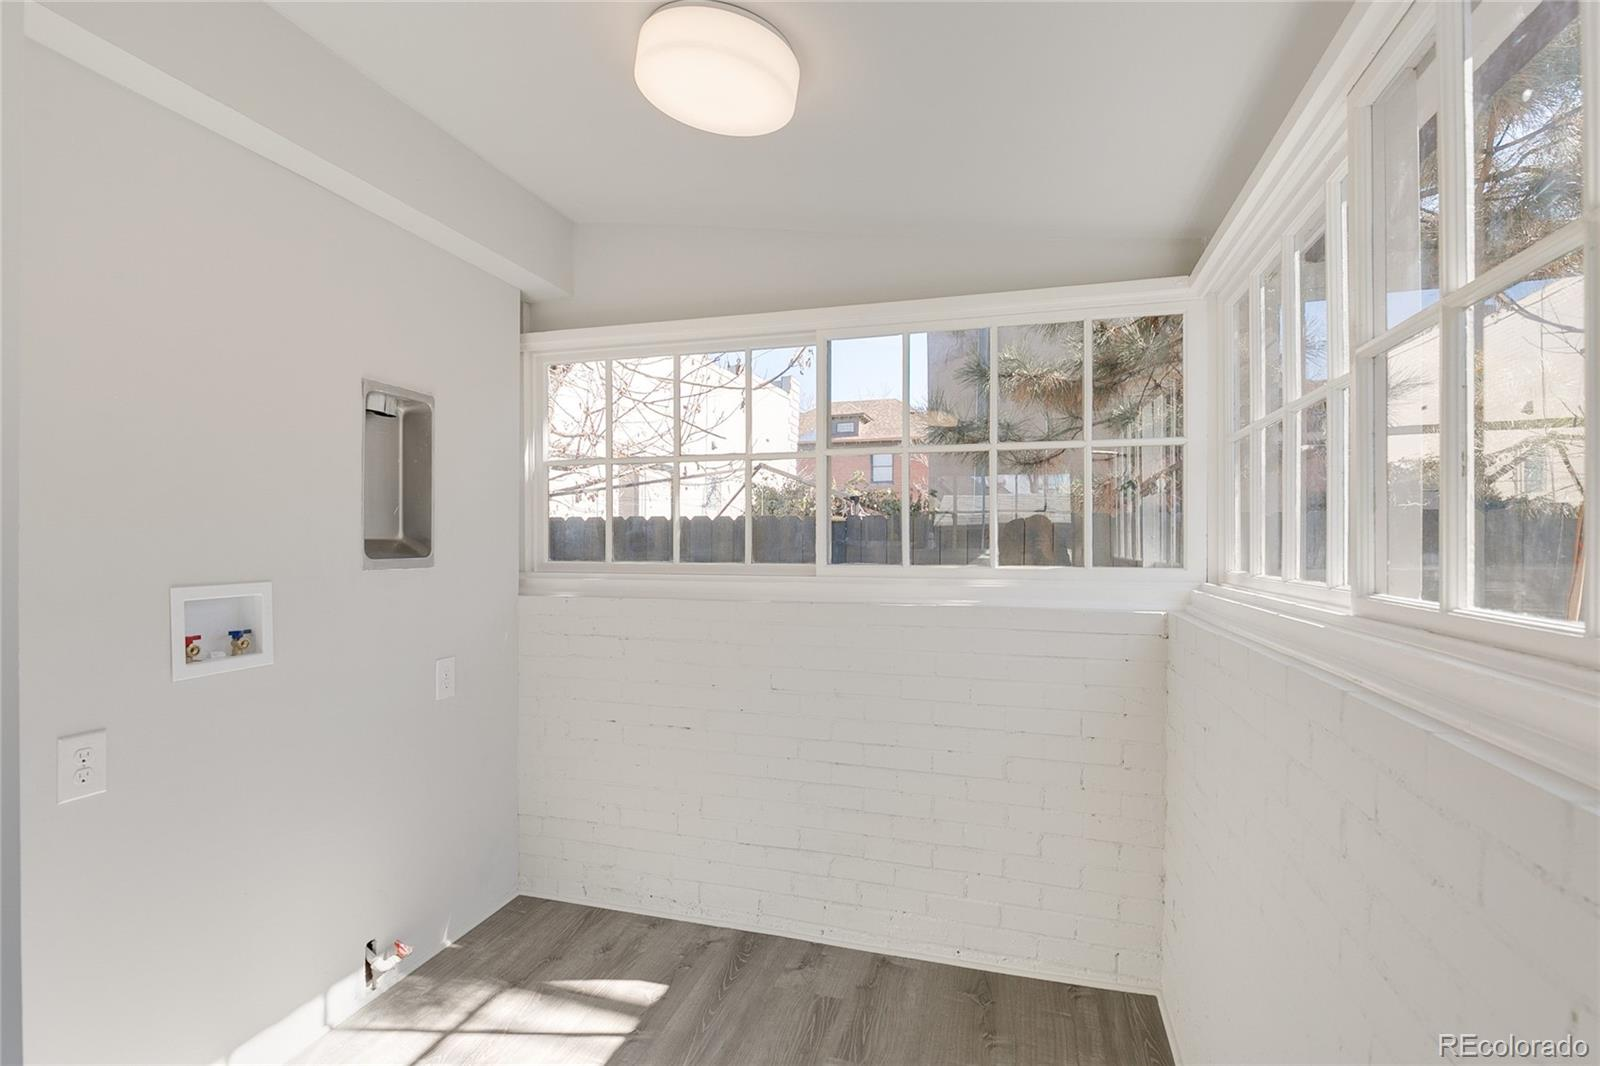 MLS# 4666448 - 13 - 308 W 4th Avenue, Denver, CO 80223